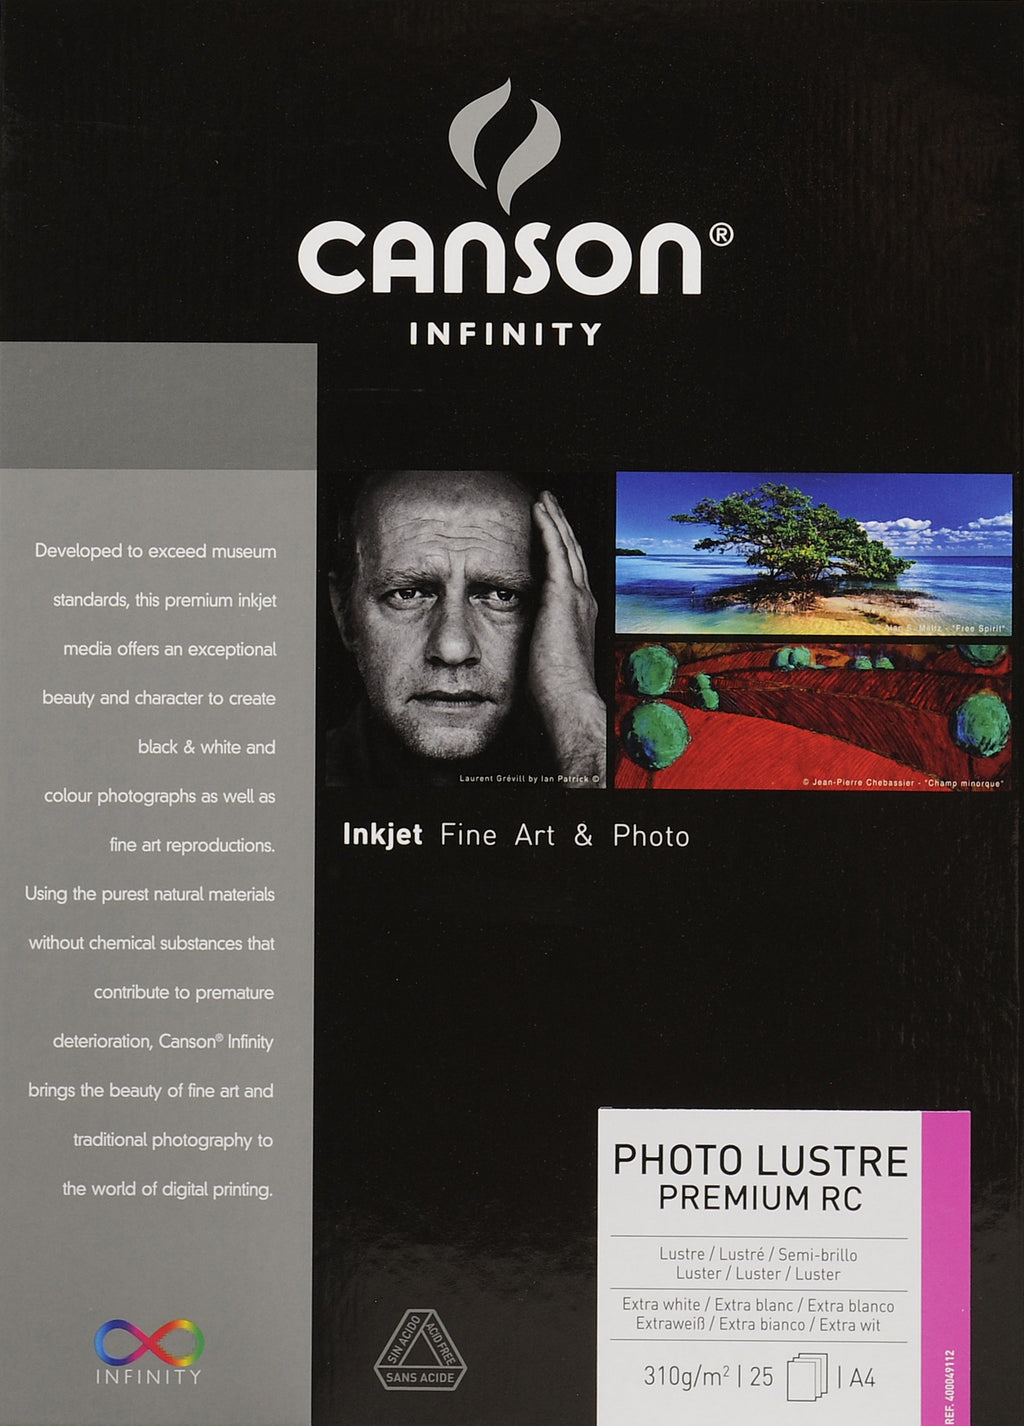 Canson Infinity Photo Luster Premium RC - 310gsm - A4 (25 sheets) - Wall Your Photos